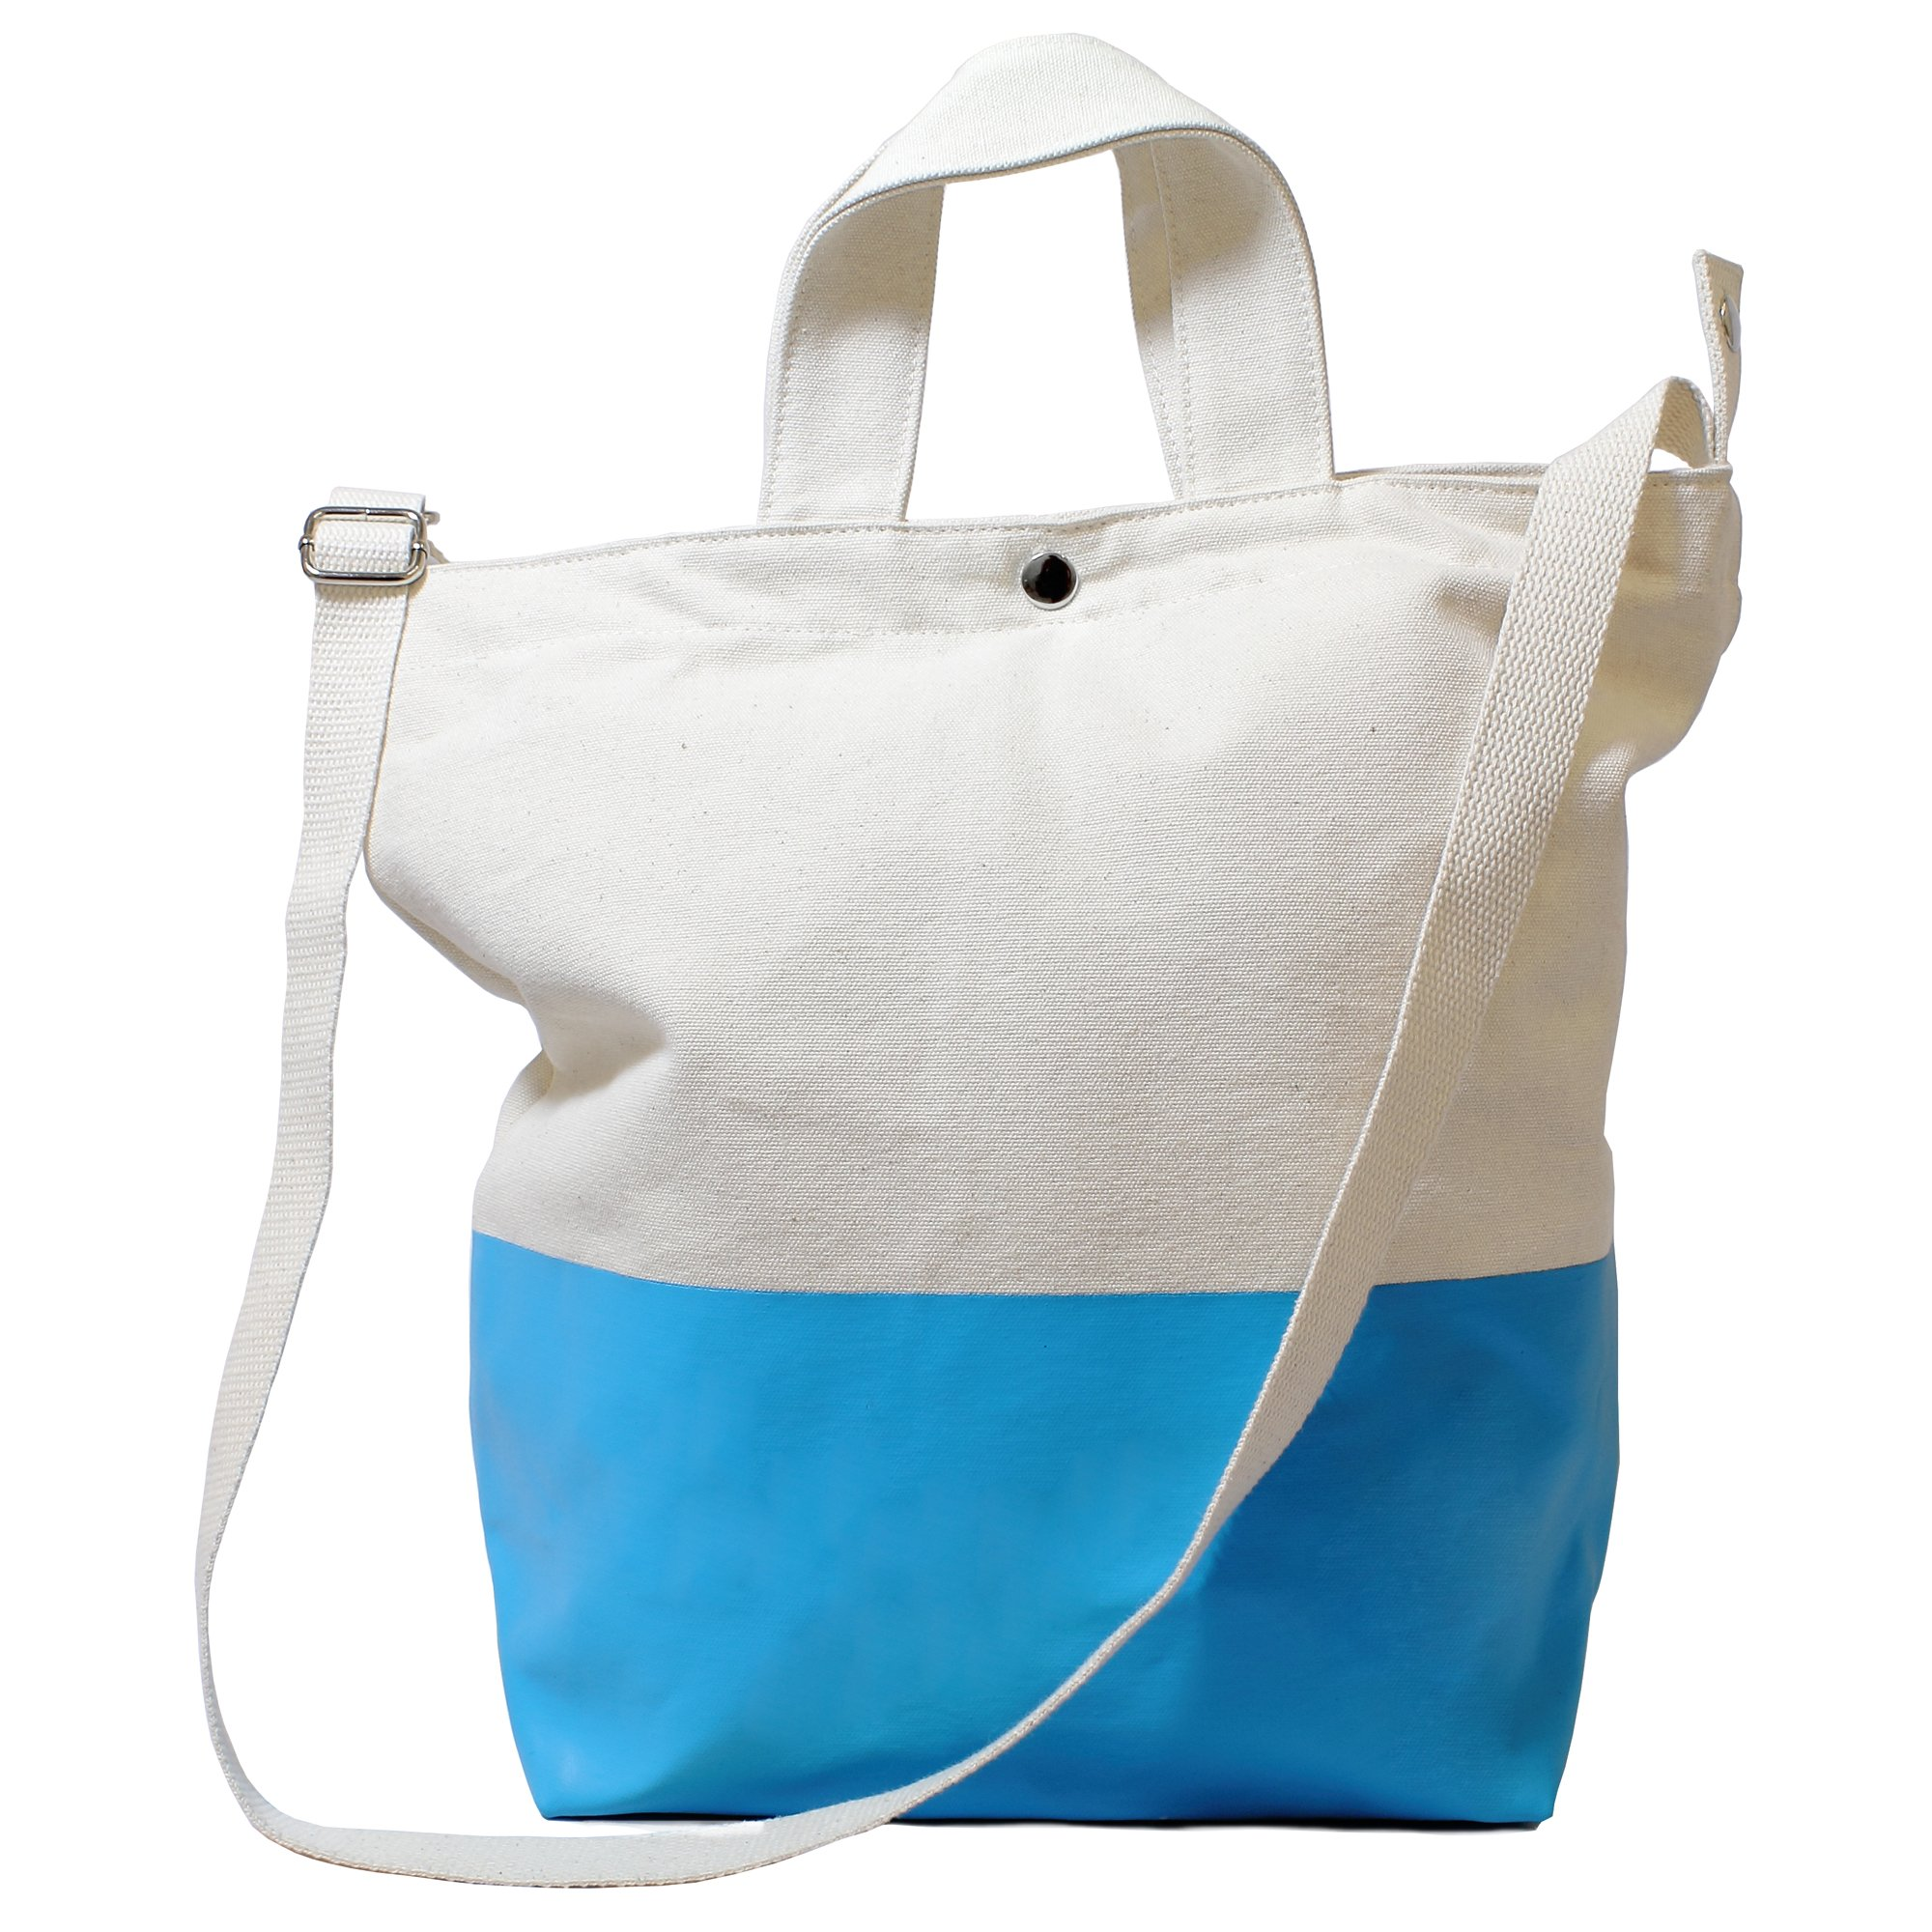 Cathy's Concepts Color Dipped Tote, Aqua